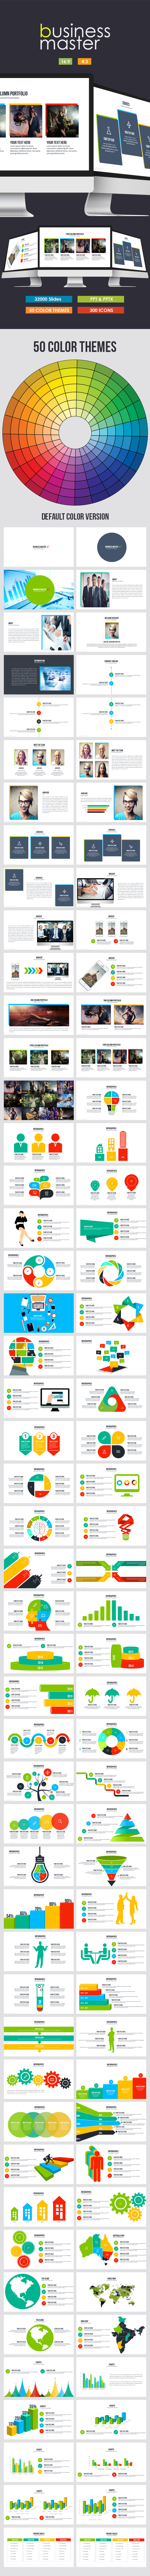 Business Master Powerpoint Presentation - Business PowerPoint Templates